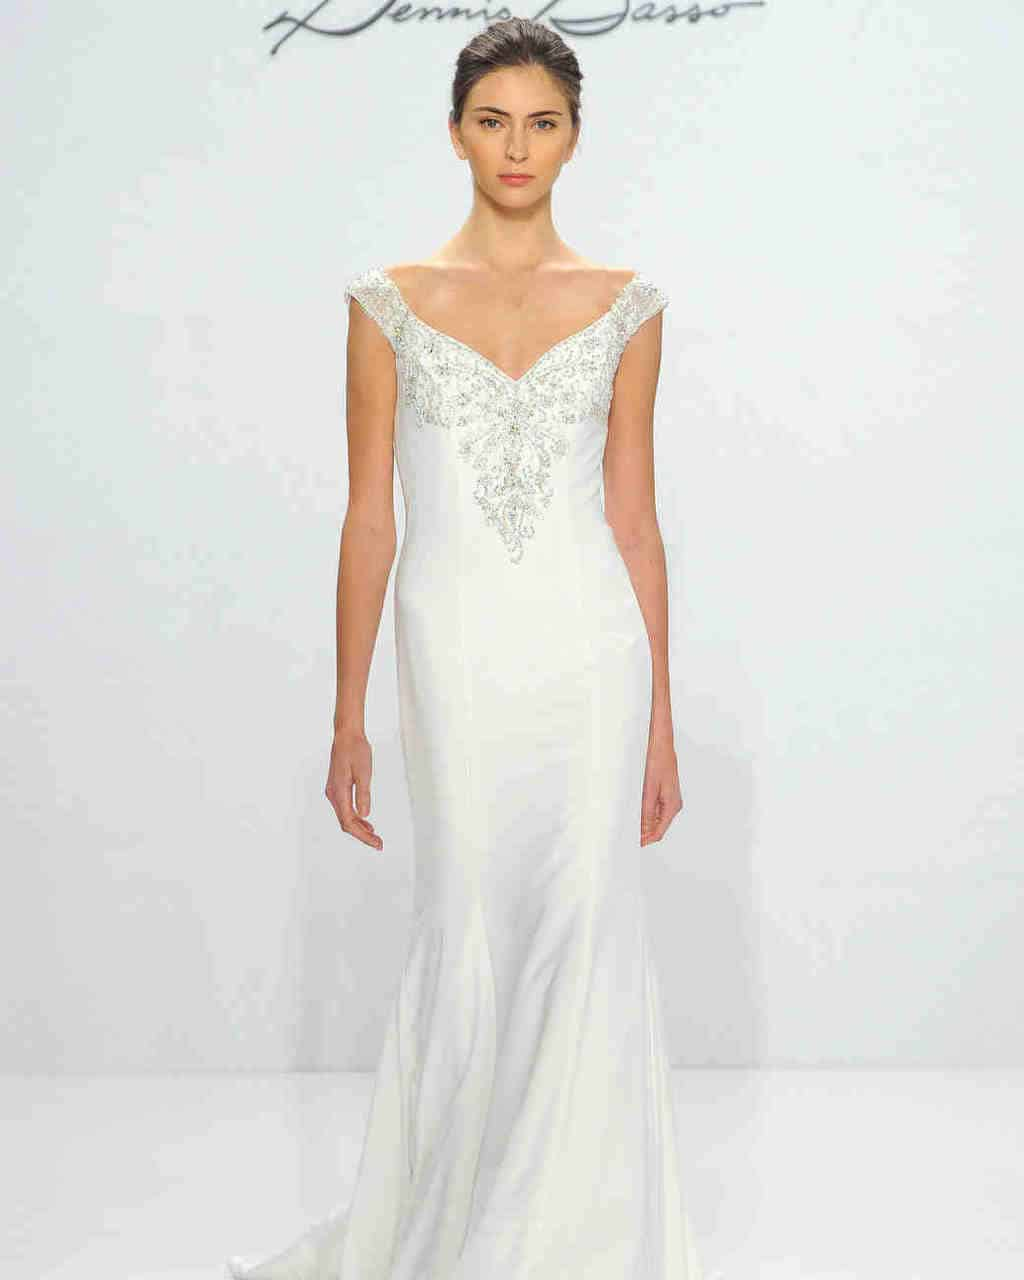 dennis-basso-wedding-dress-fall2017-6203351-003_vert